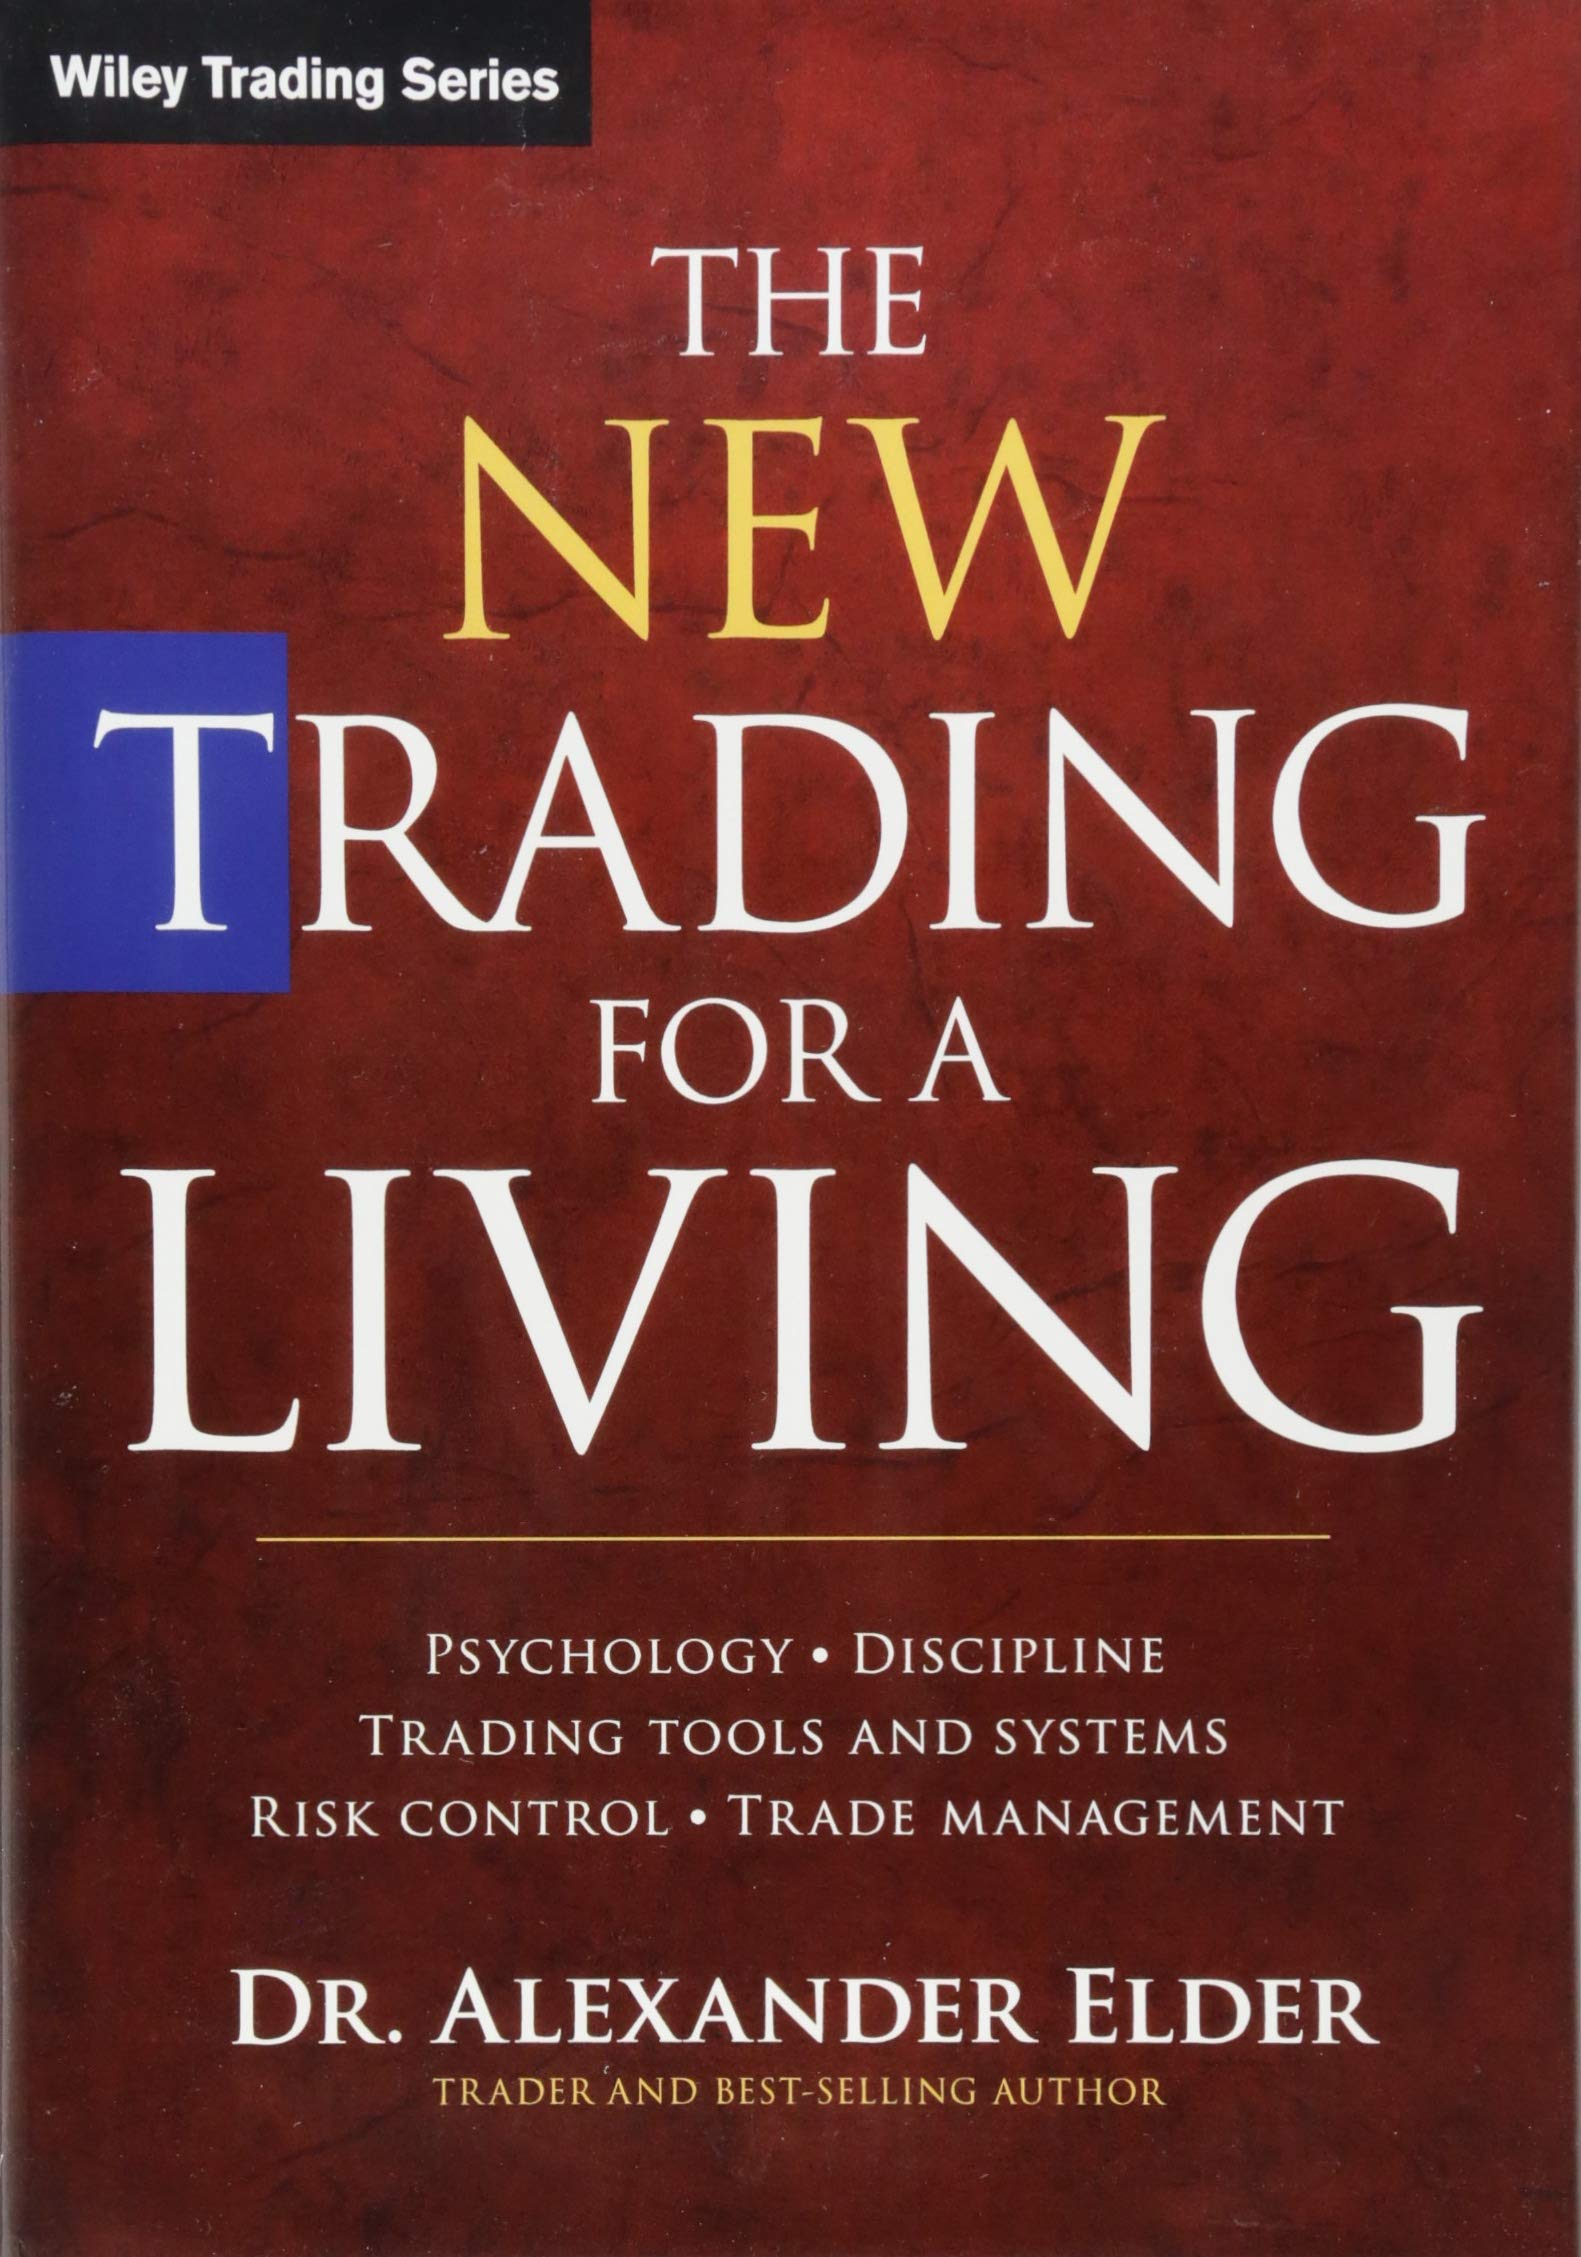 The New Trading For A Living  Psychology Discipline Trading Tools And Systems Risk Control Trade Management  Wiley Trading Series